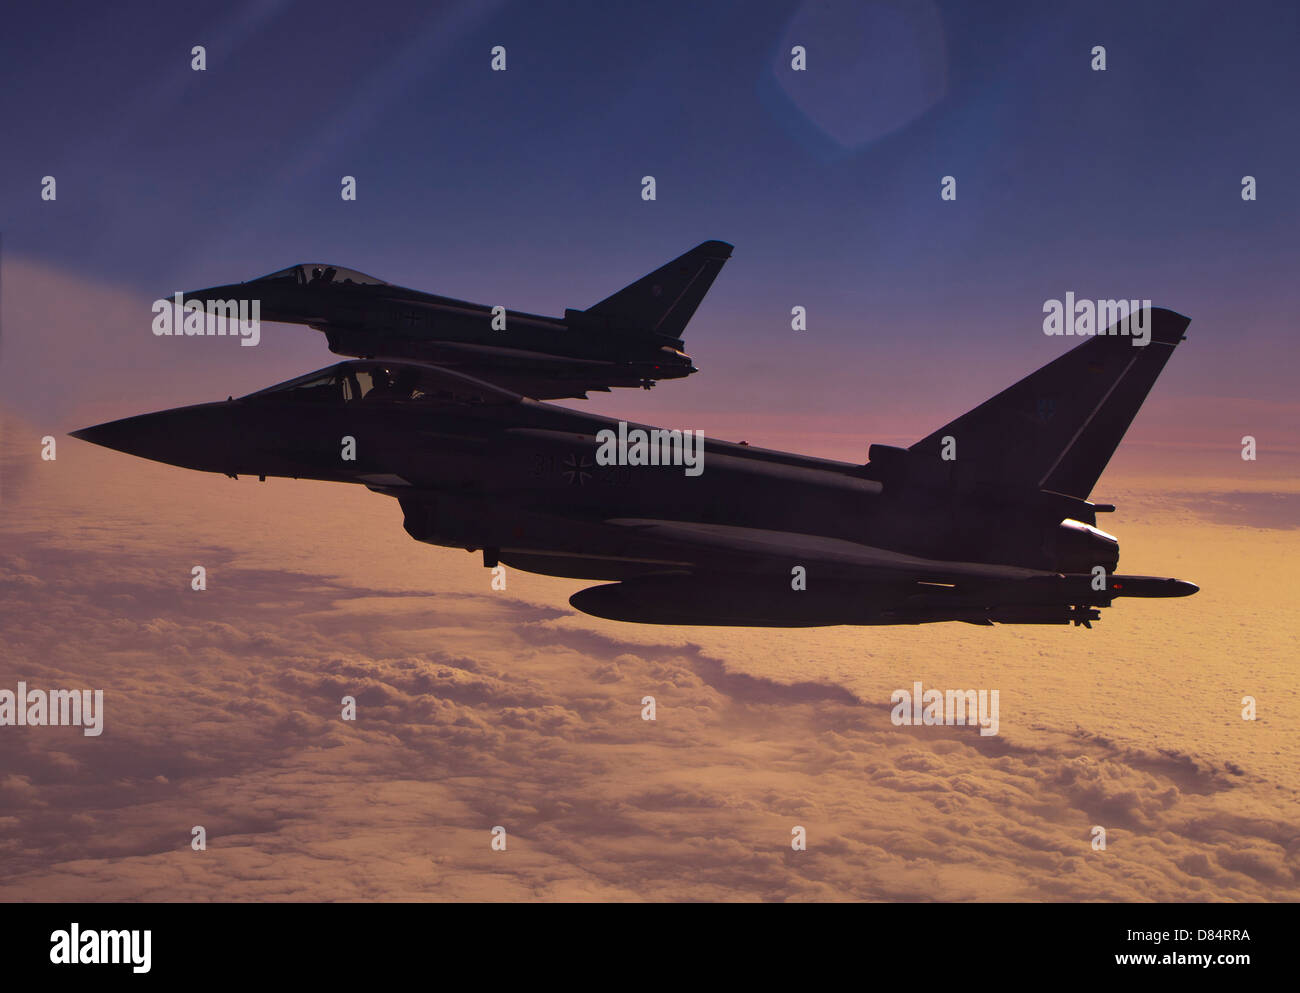 Two German Air Force Eurofighter Typhoon's at sunset. Stock Photo